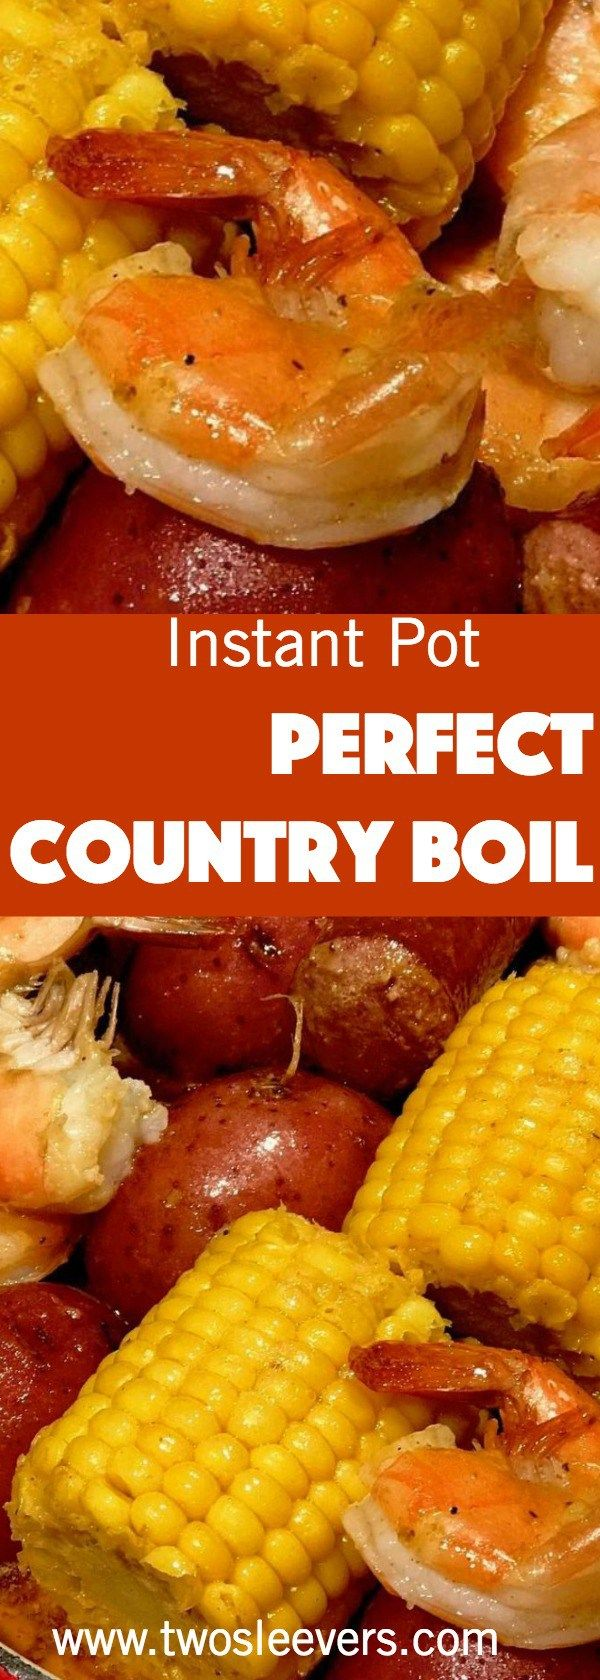 Fool-proof recipe for a perfectly cooked Low country boil in your Instant Pot. Find out how to cook perfect shrimp in your pressure cooker. (Bake Dinner Recipes)